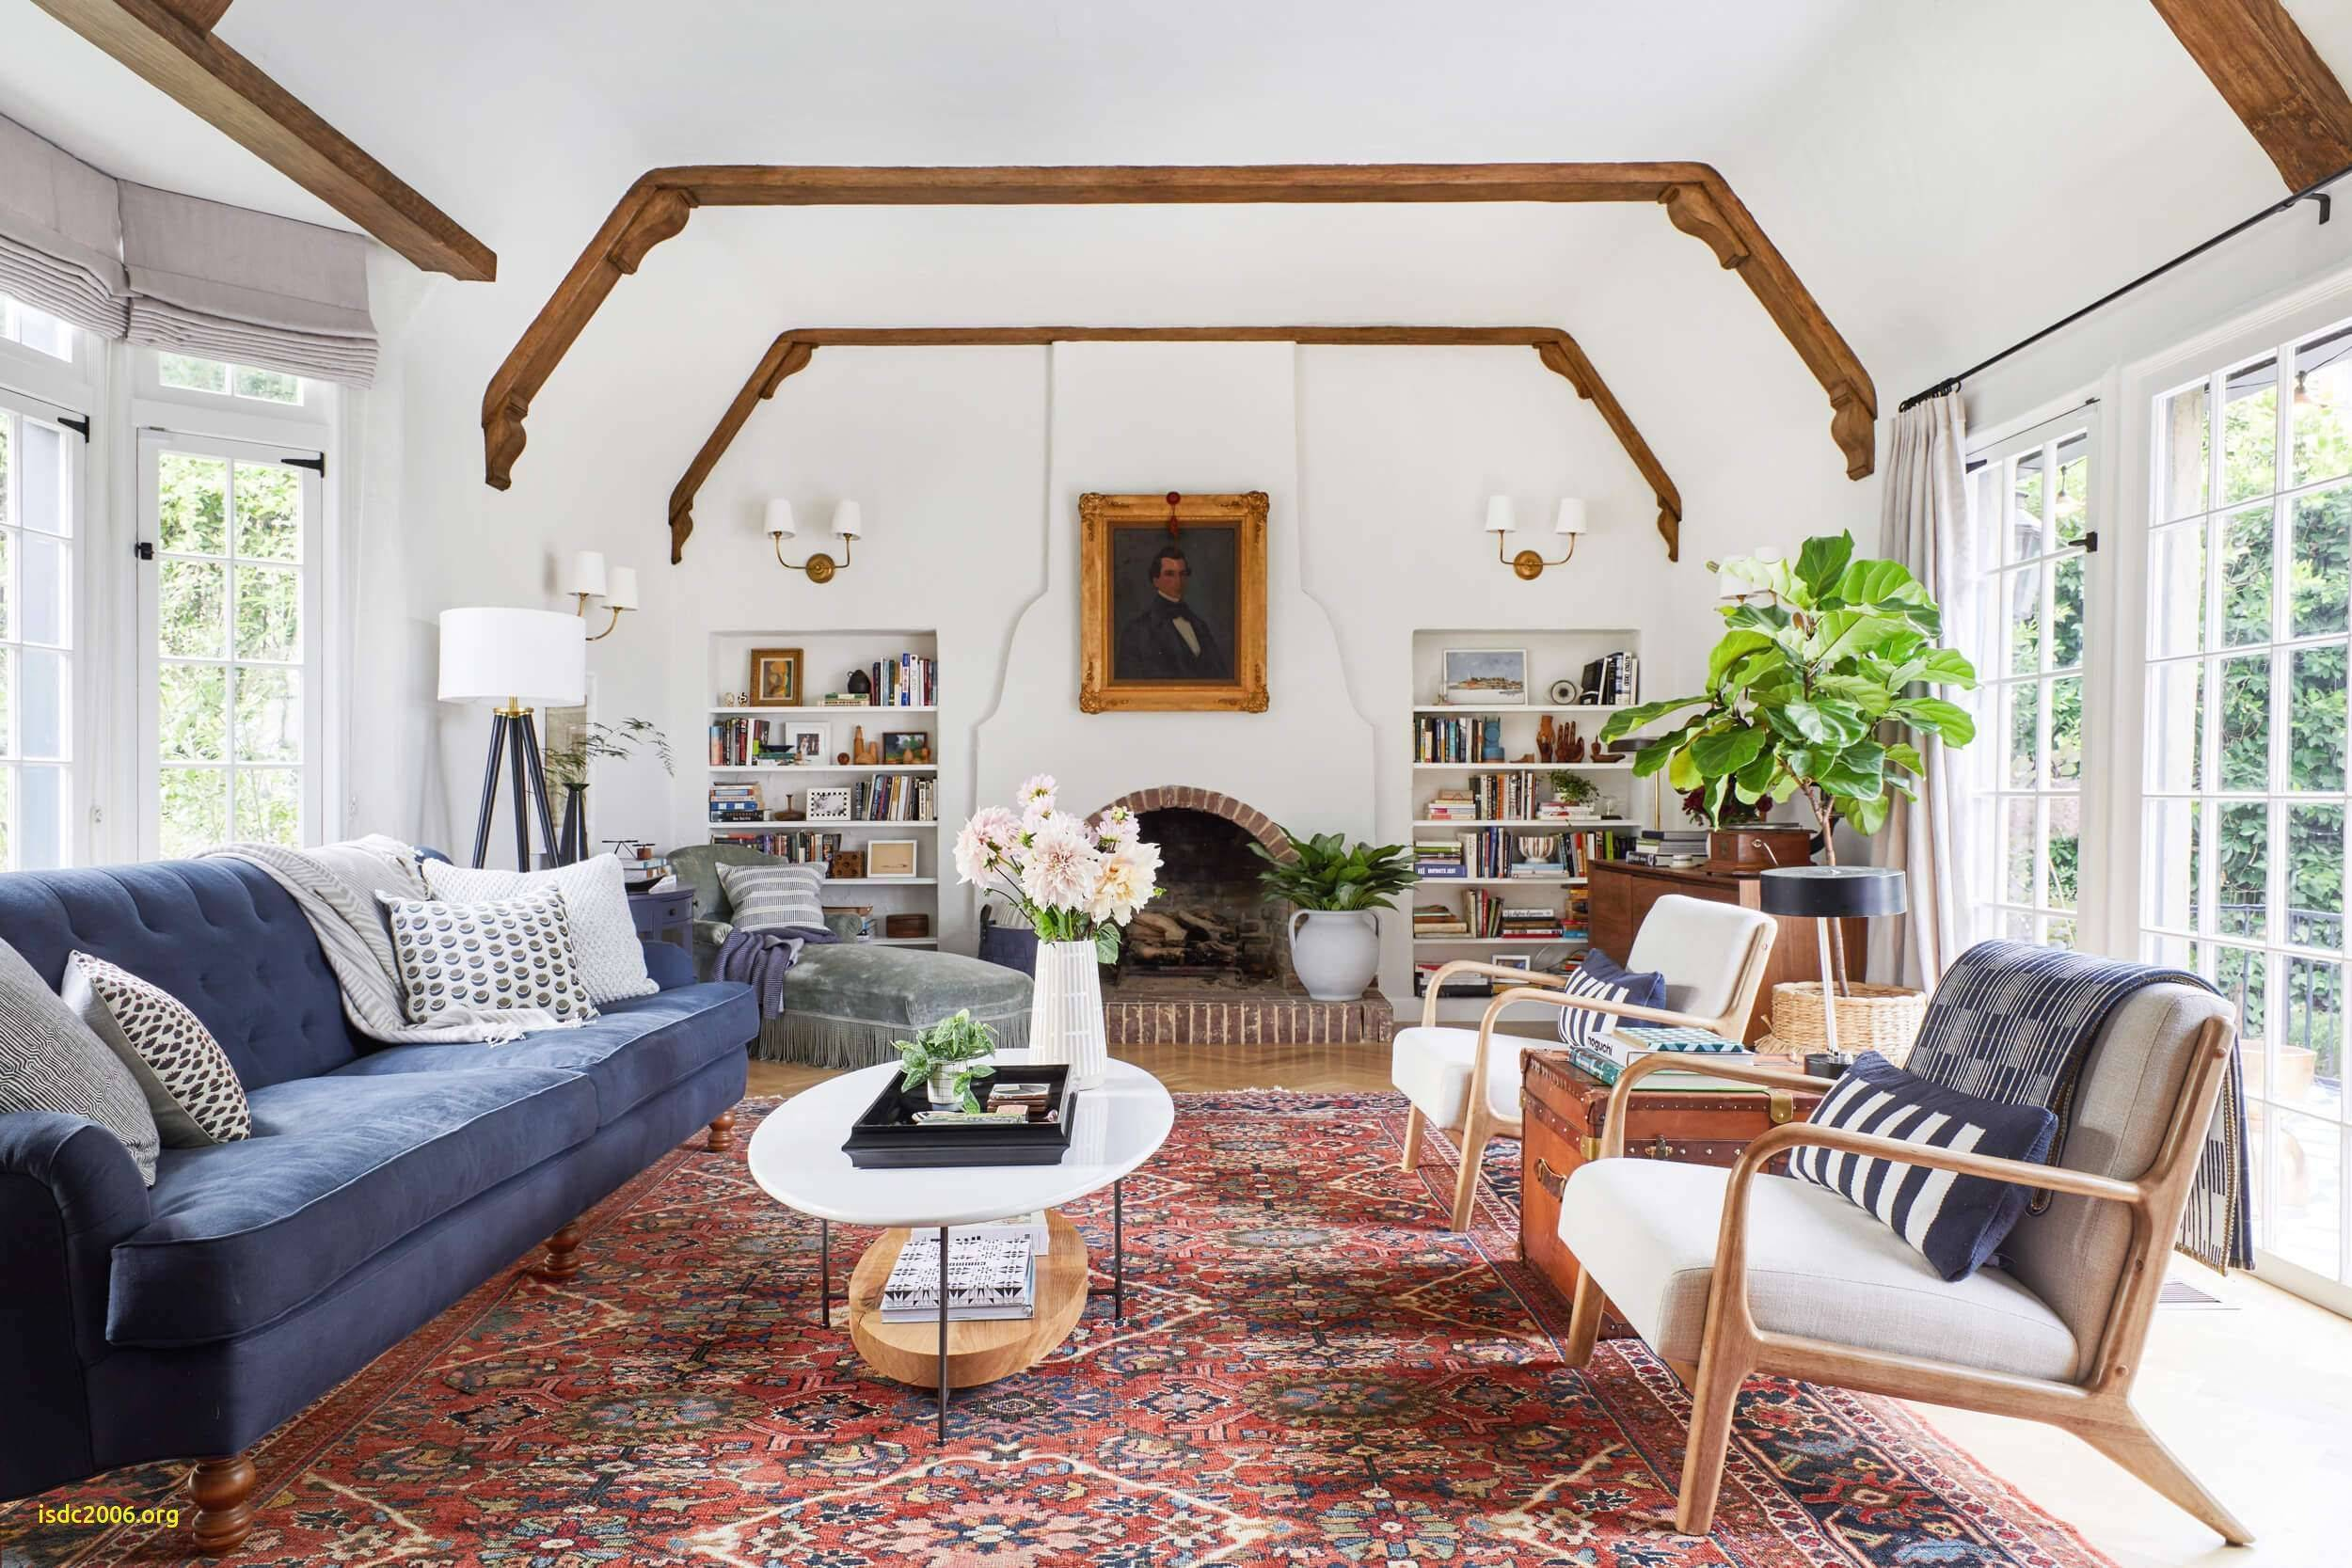 cottage huis interieur foto's woonkamer traditionele decoreren ideeën awesome shaker stoelen 0d design cottage decoreren ideeën 30